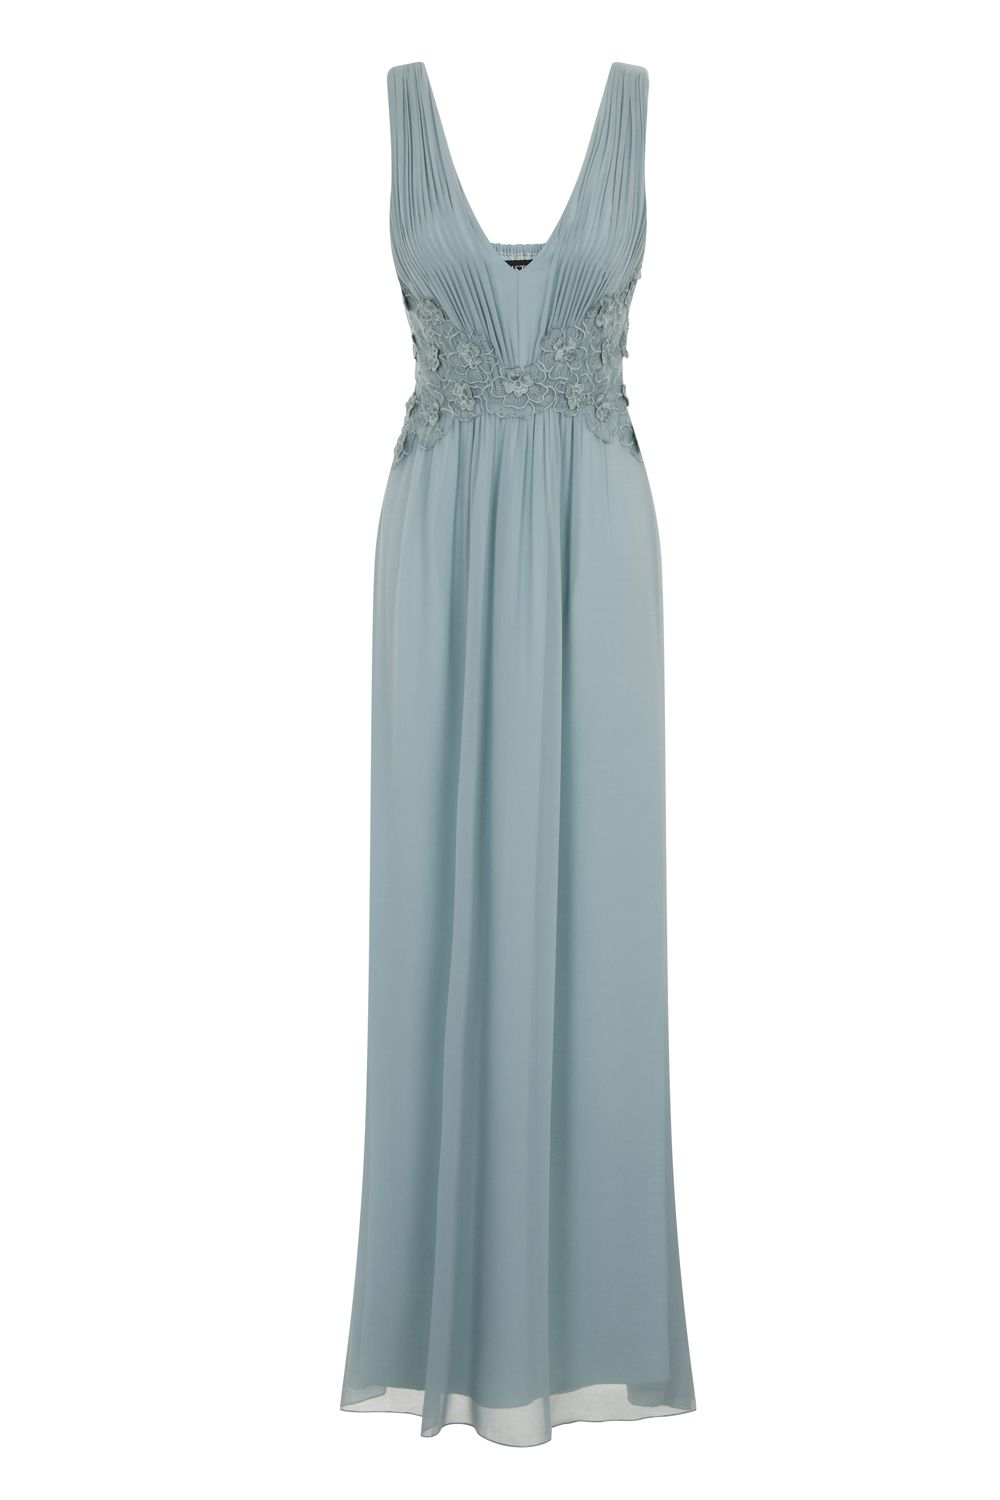 A stunning maxi dress perfect for that special occasion stunning